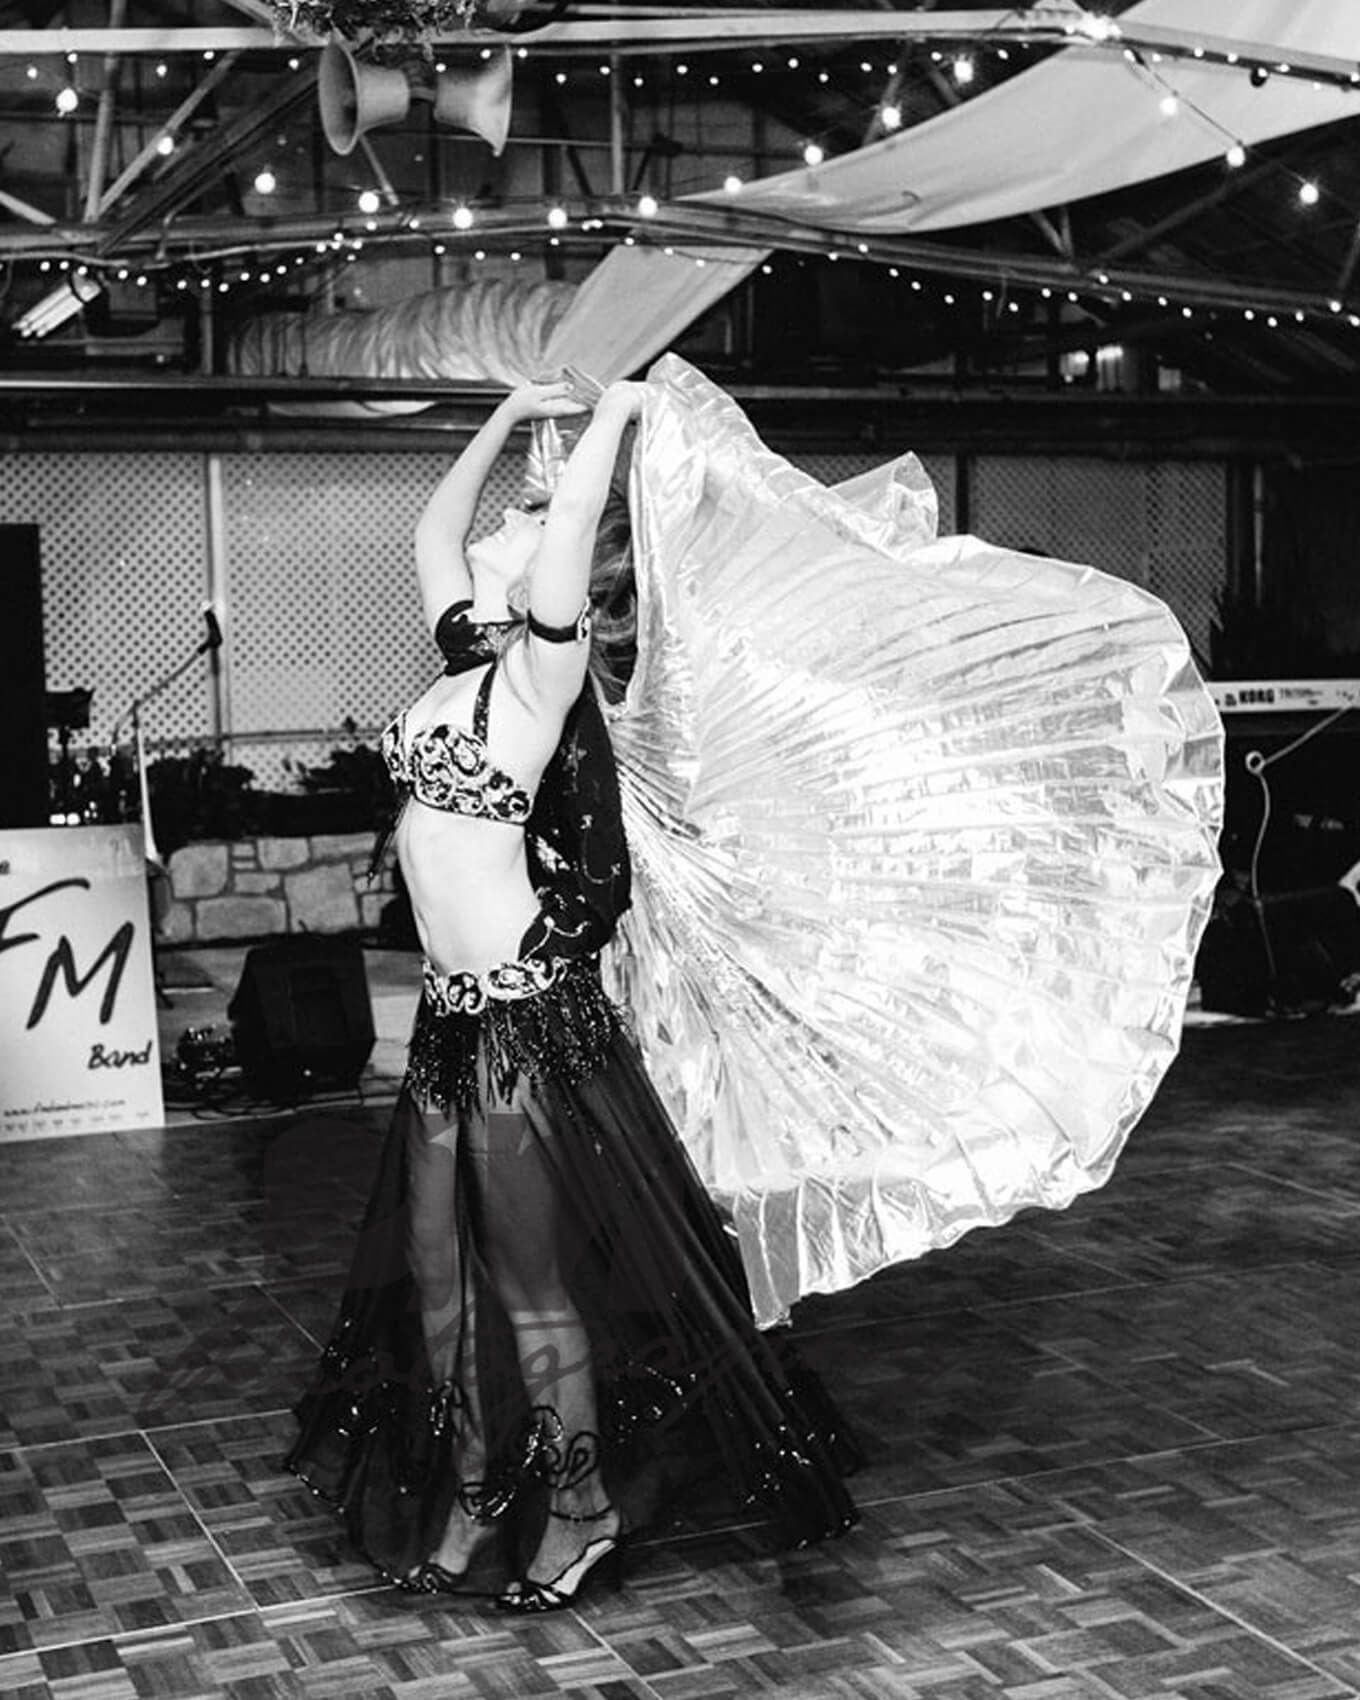 Donna performs using her belly dancing outfit with isis wings